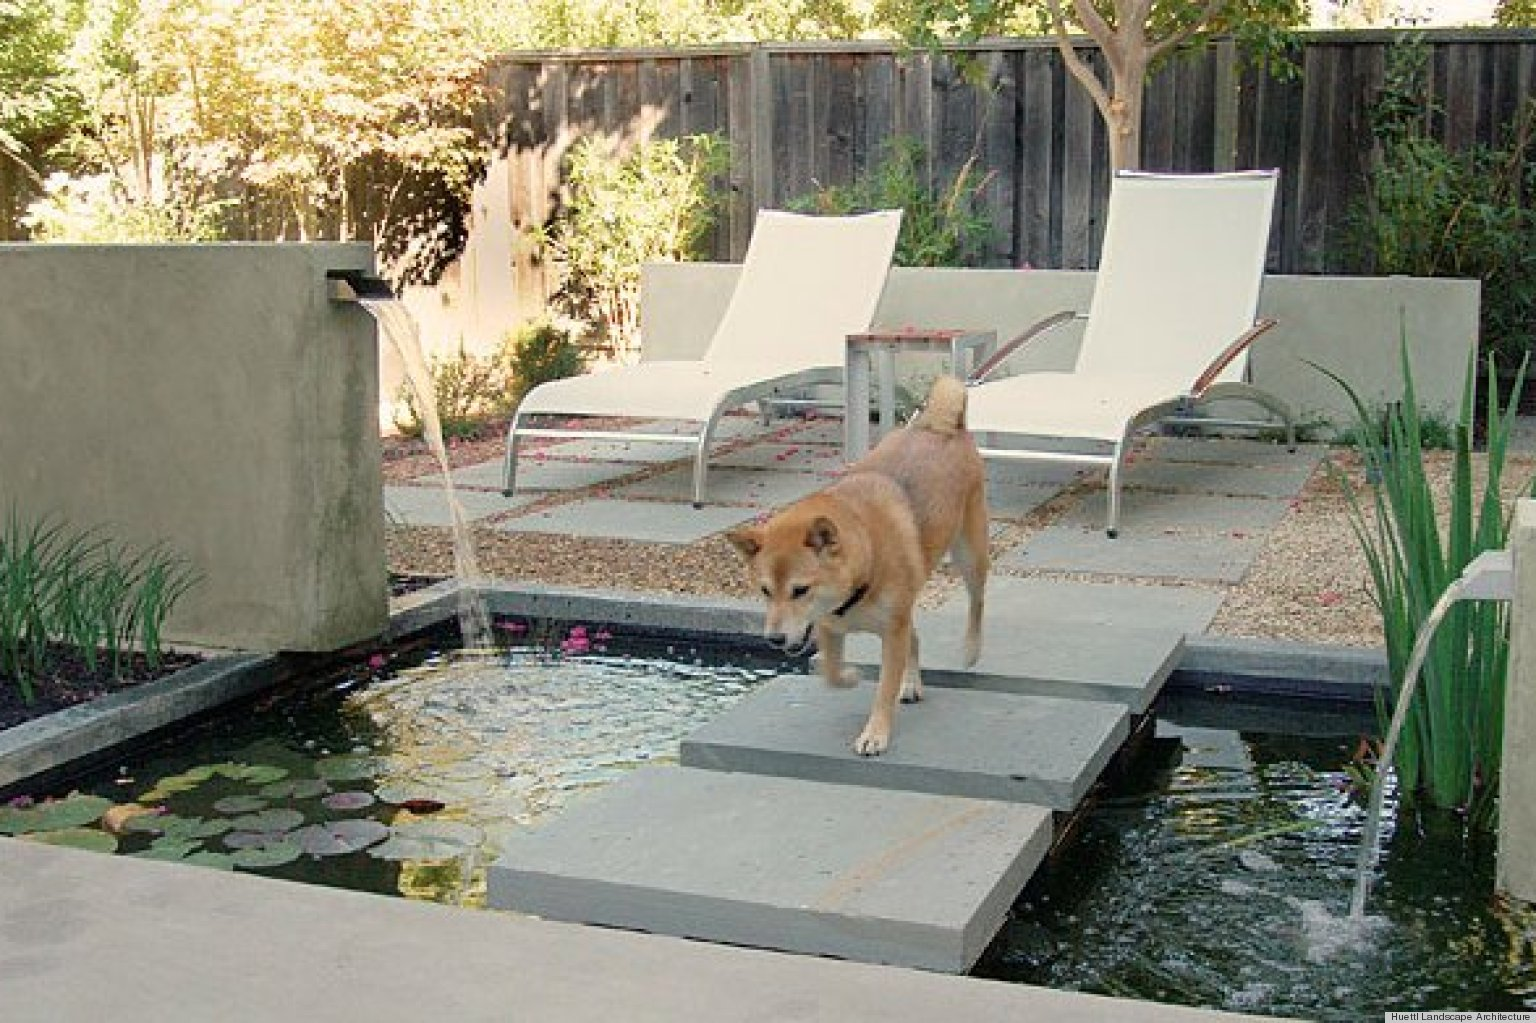 Backyard Ideas For Dogs outstanding minimalist small backyard landscaping outdoor ideas showing green grass with colorful flower and plant design 8 Backyard Ideas To Delight Your Dog Huffpost